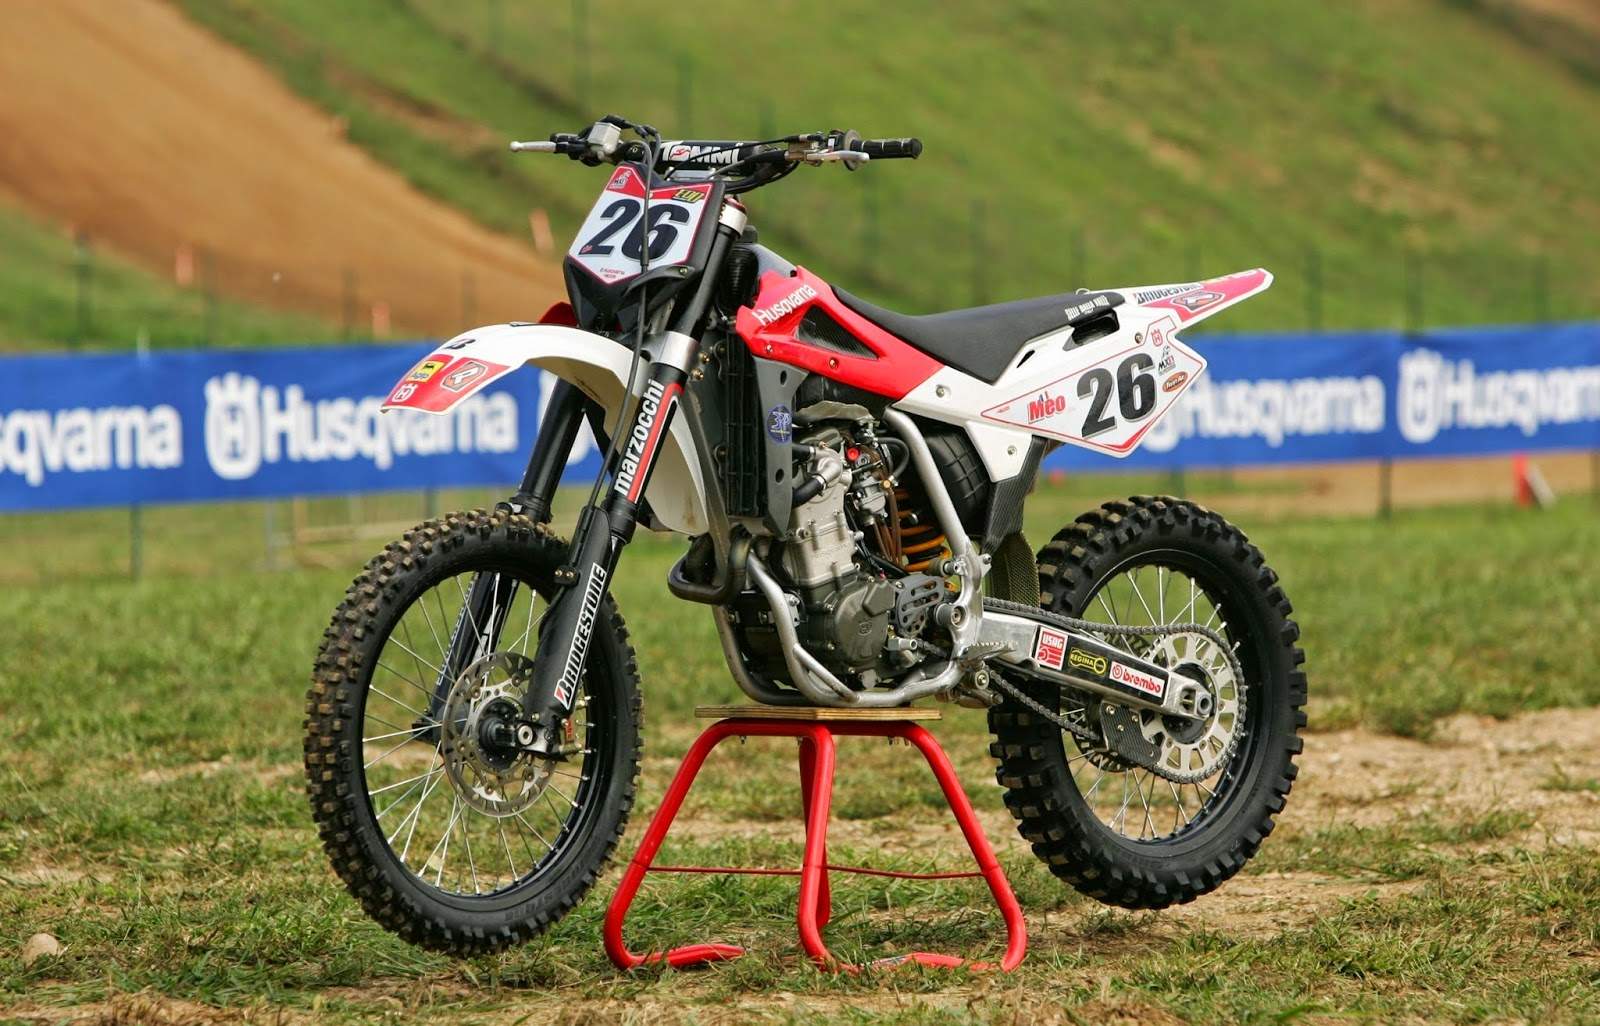 Husqvarna TC510 Dirt Sports Motorcycles Price